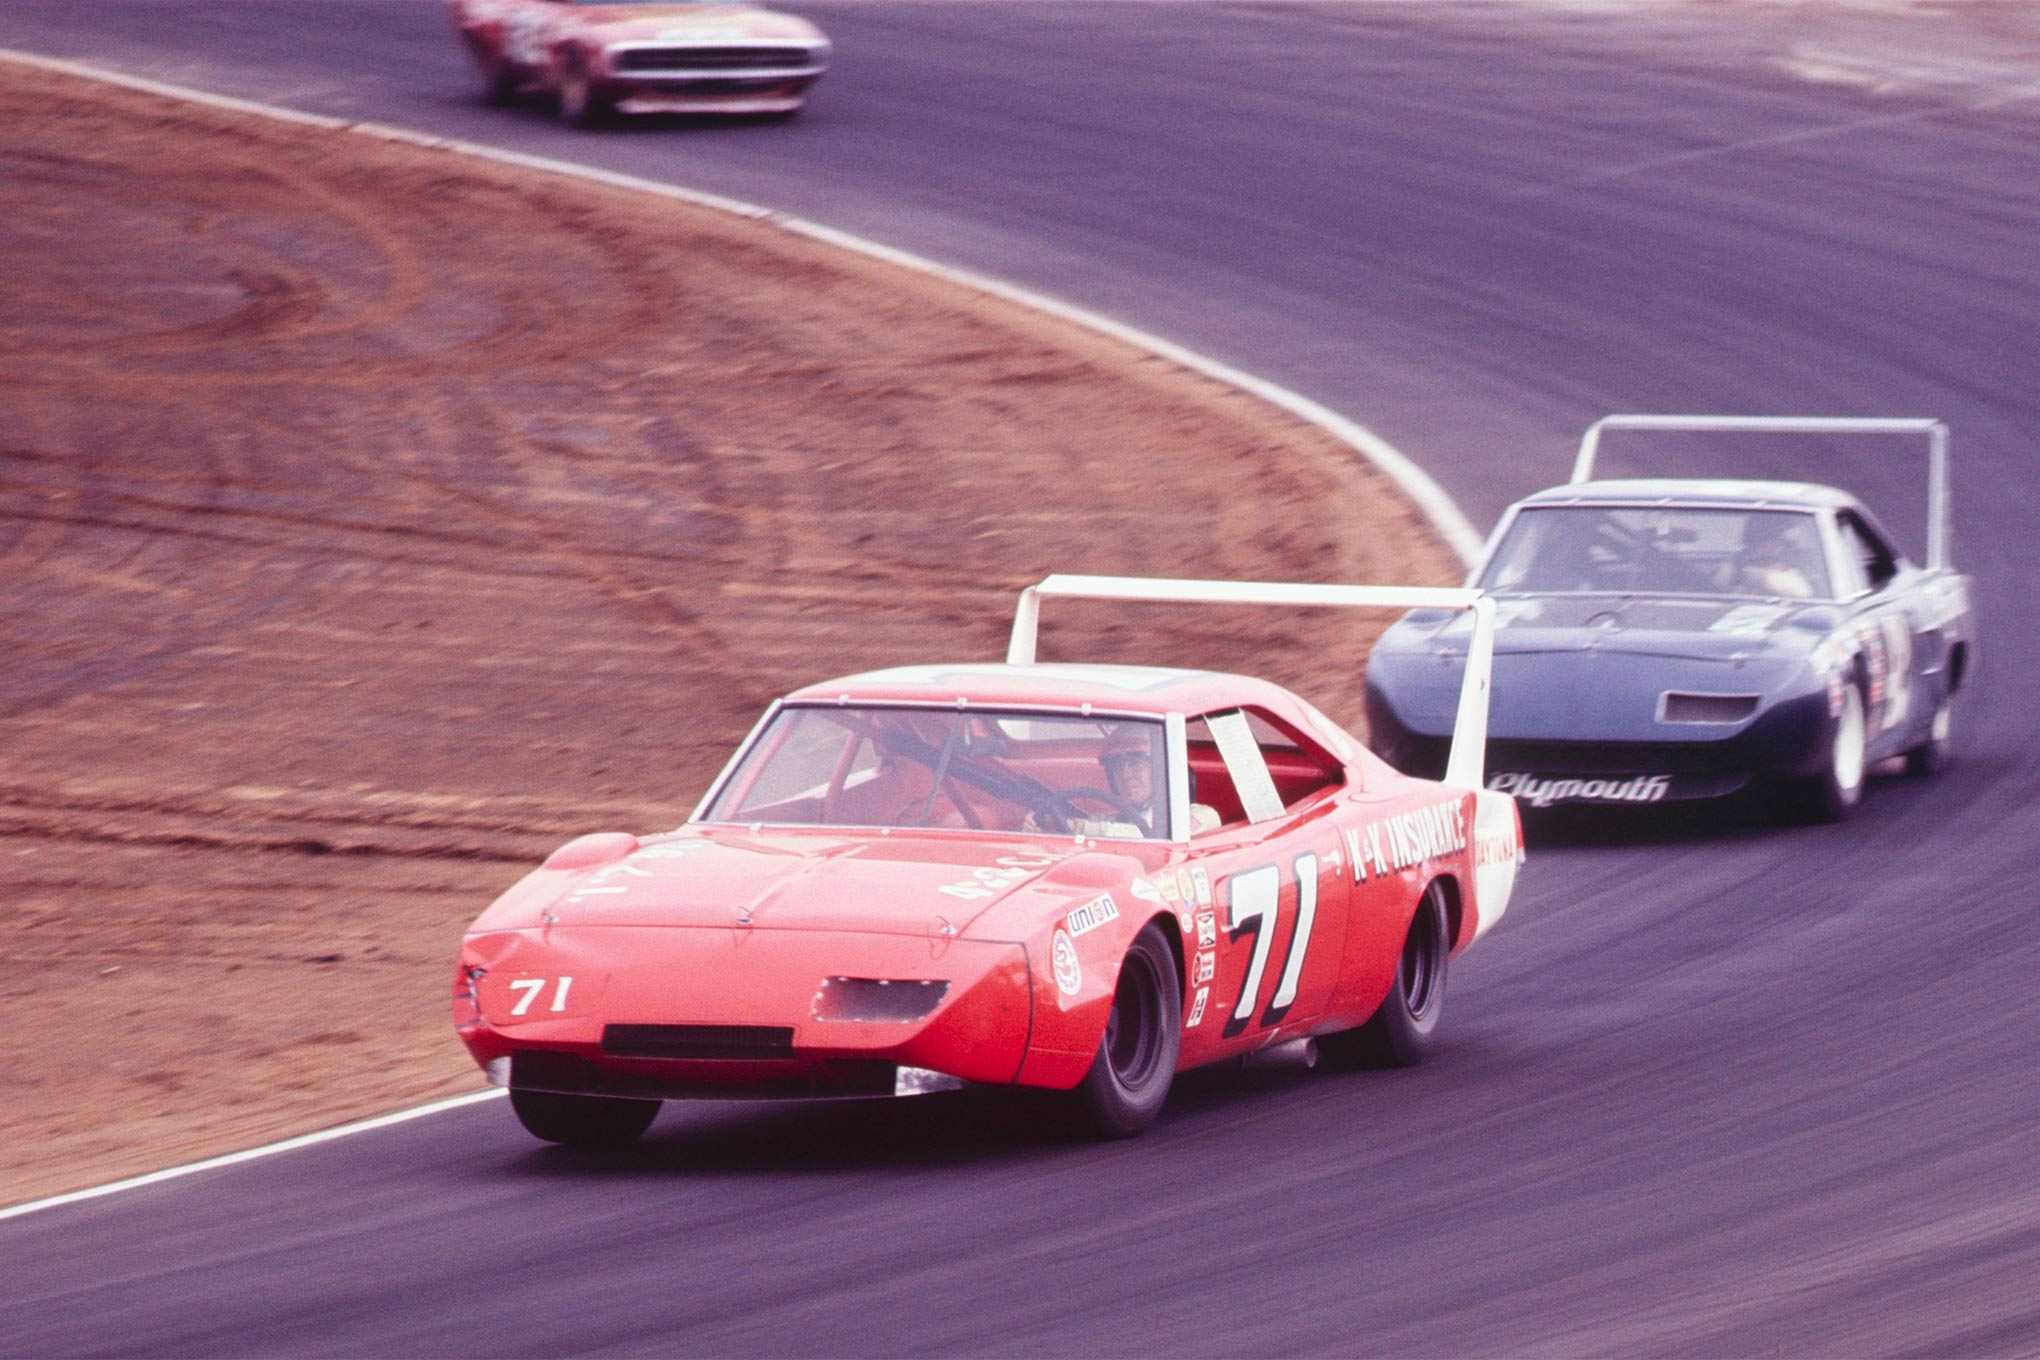 Isaac being chewed from the rear by Dan Gurney in the Petty Enterprises No. 43 Plymouth Superbird at the 1971 Motor Trend 500 at Riverside. Note the damaged front end on Isaac's Daytona.